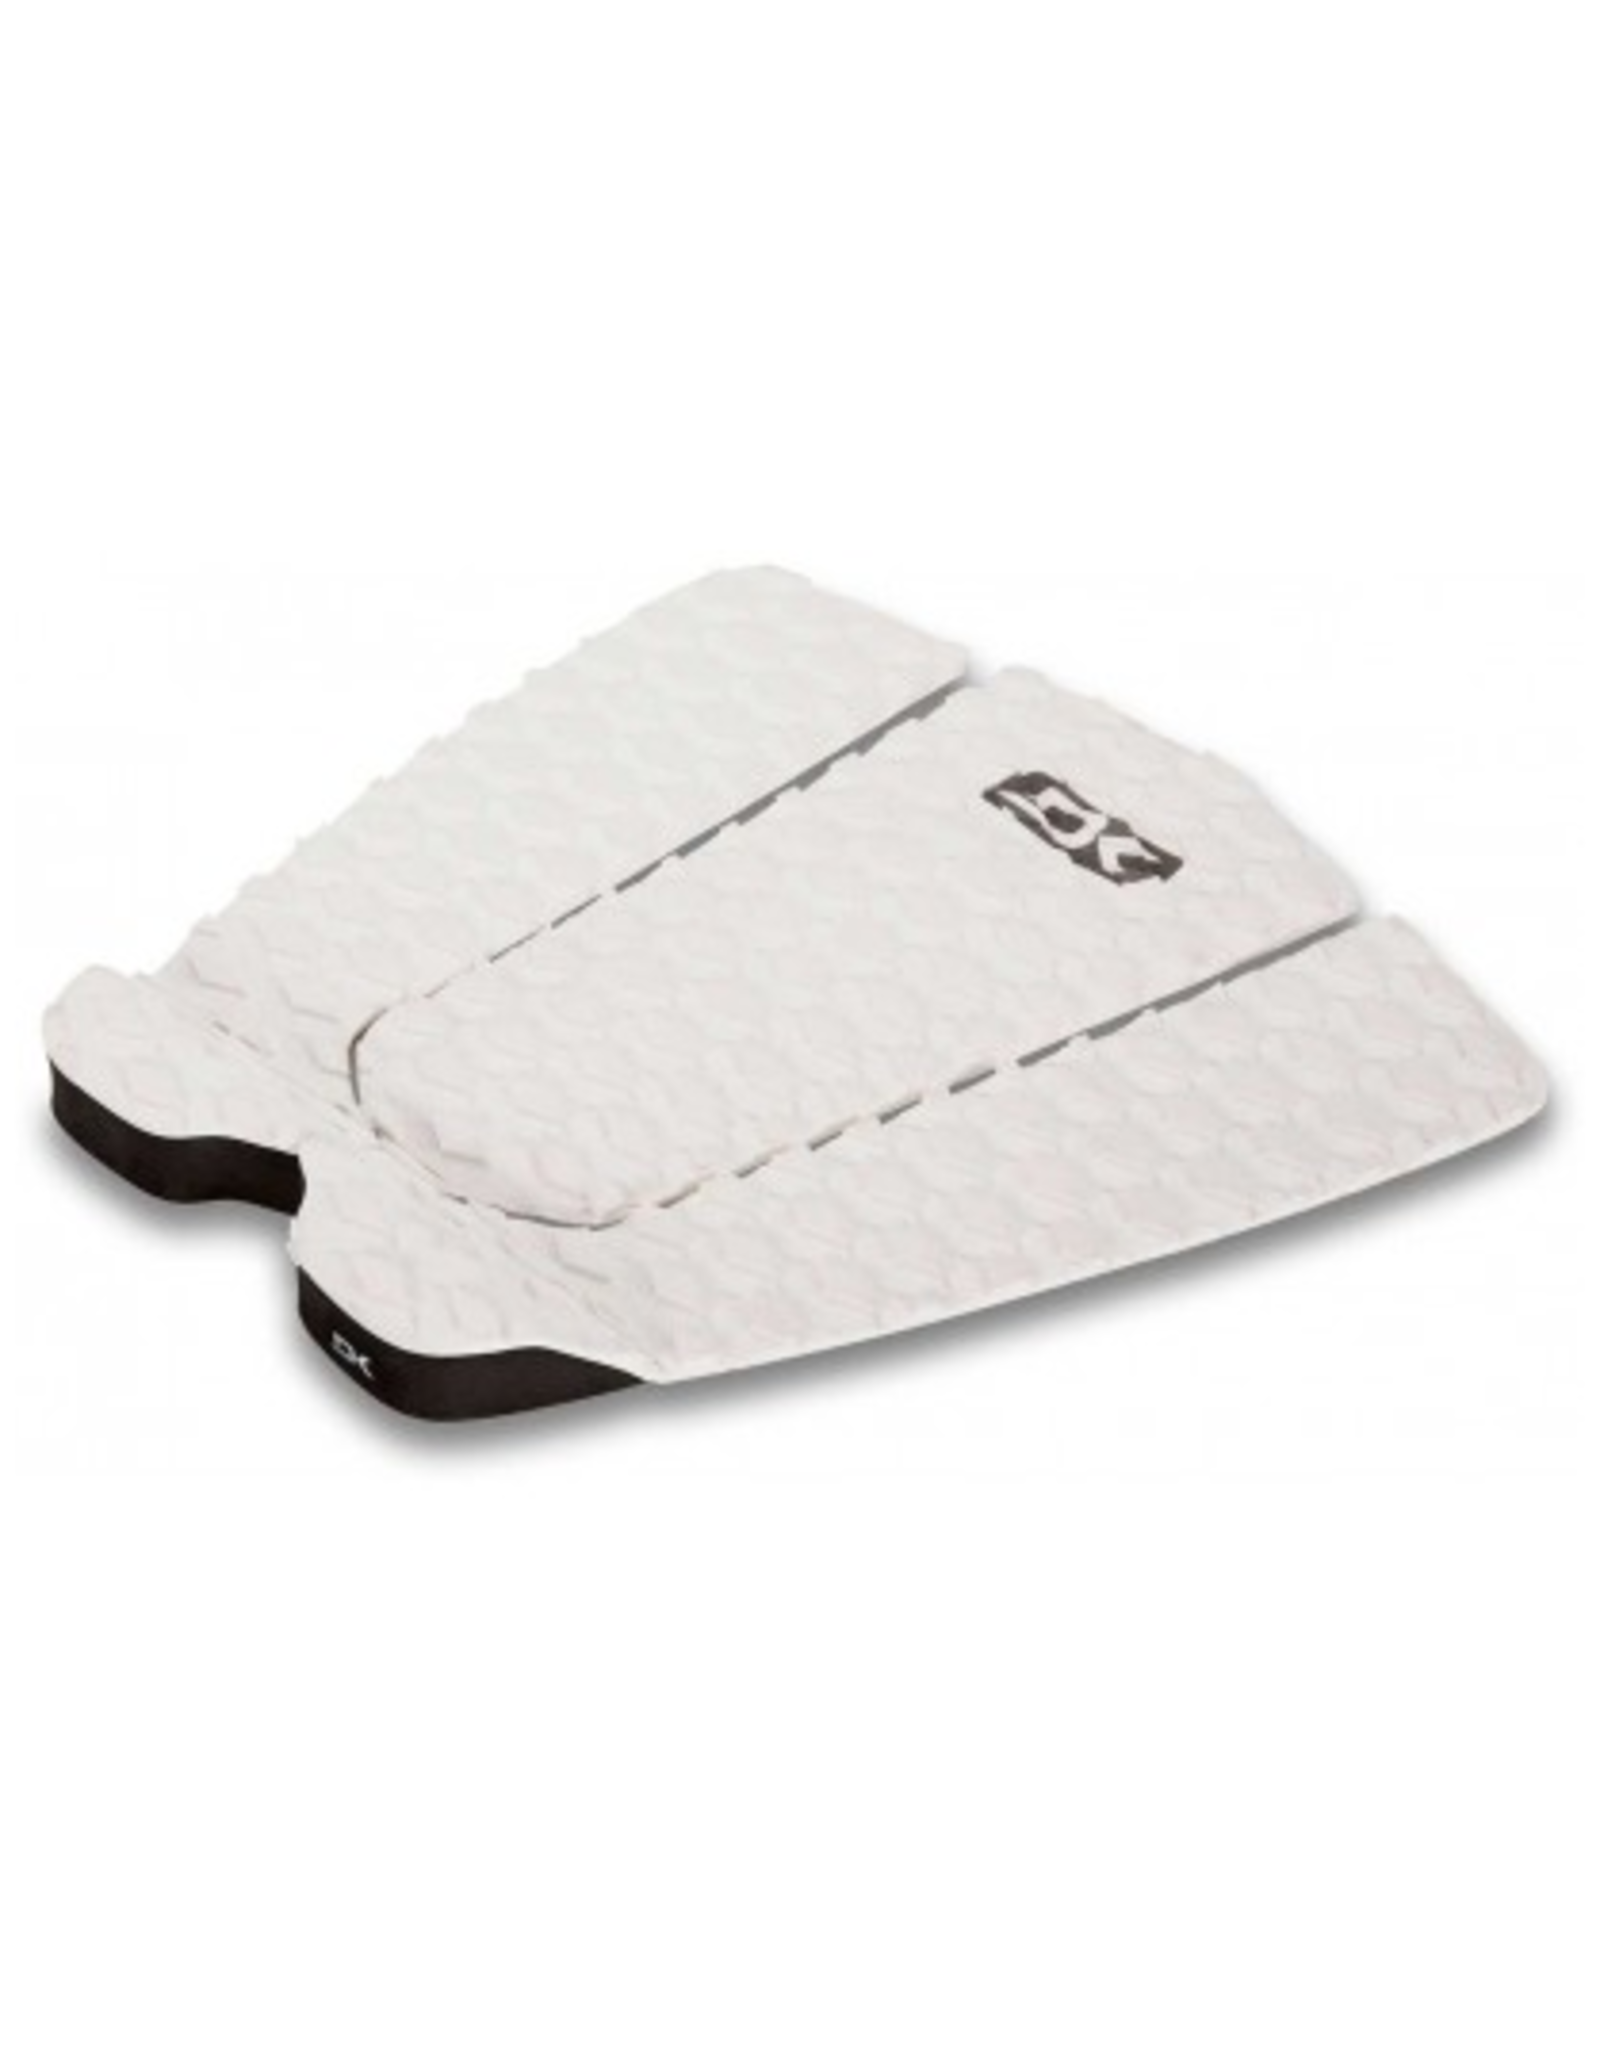 Dakine Dakine Andy Irons Traction Pad Pro White